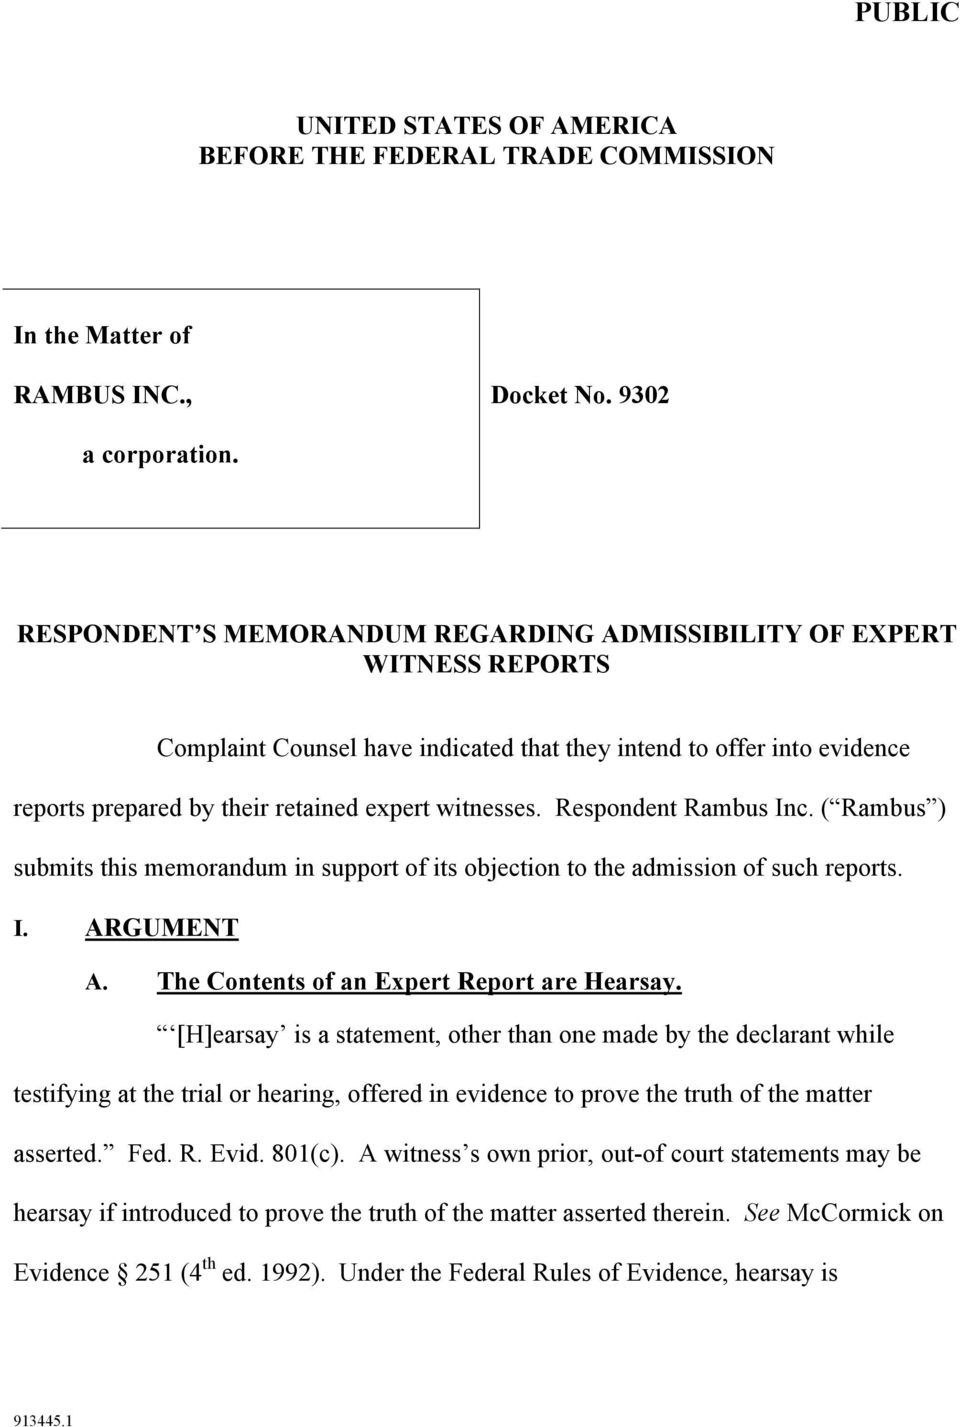 Respondent Rambus Inc. ( Rambus ) submits this memorandum in support of its objection to the admission of such reports. I. ARGUMENT A. The Contents of an Expert Report are Hearsay.